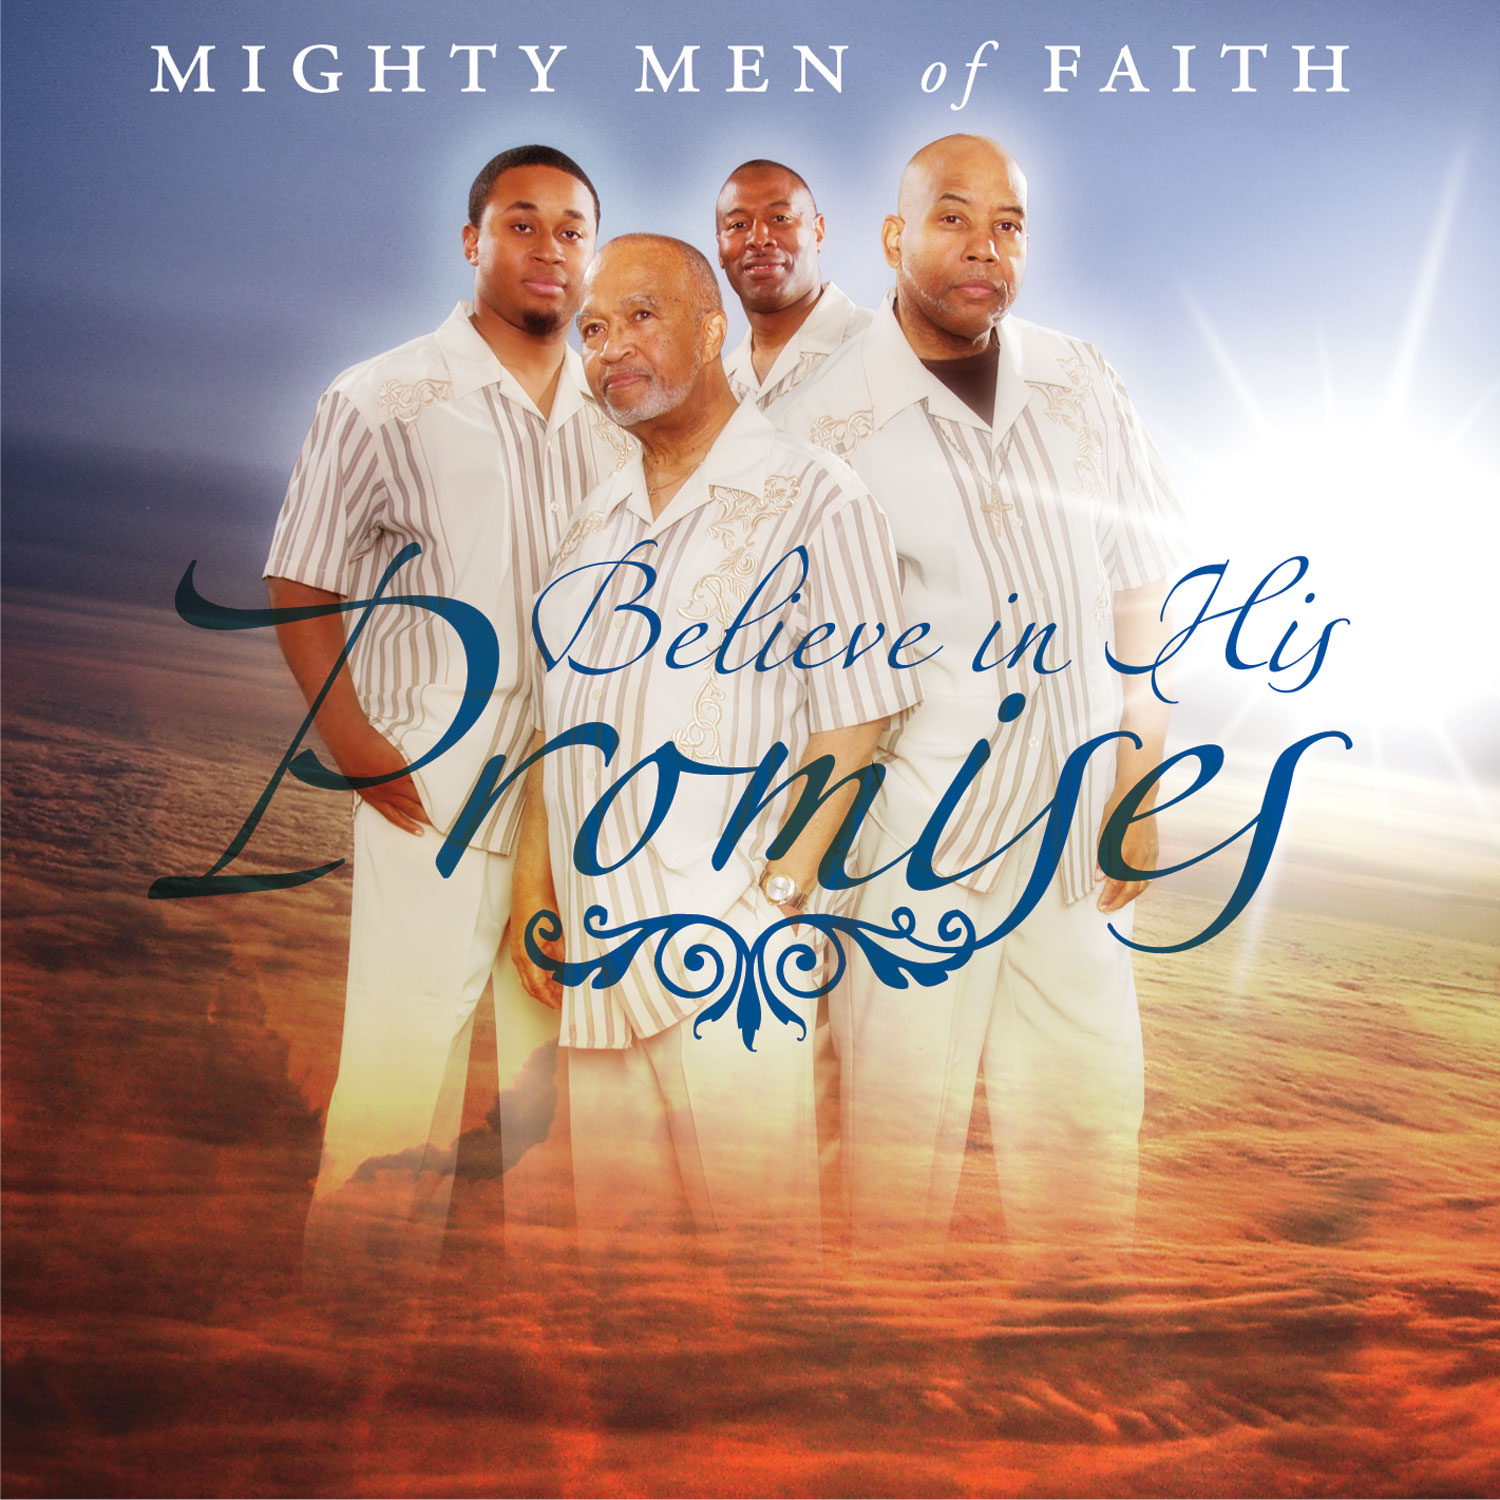 Gospel Recording artist Mighty Men of Faith are releasing a new album